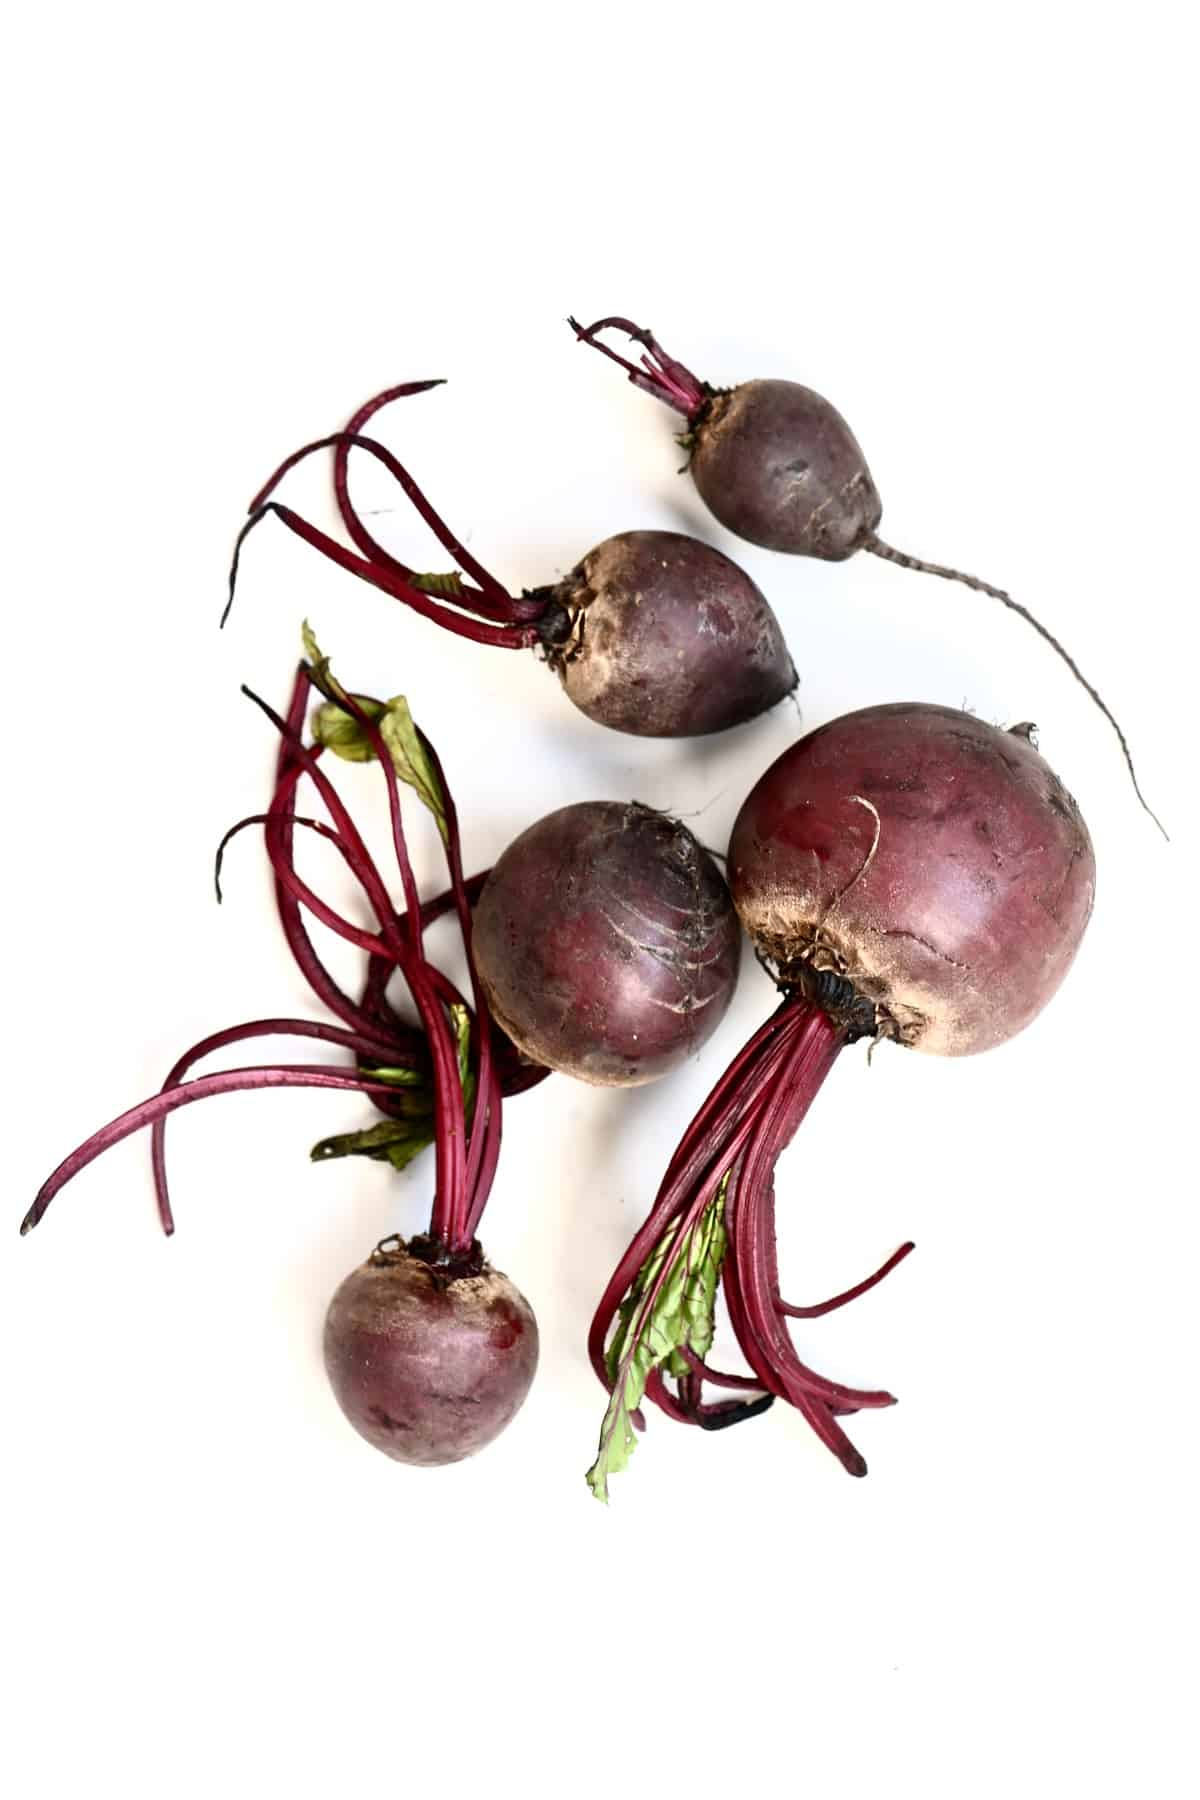 Five beetroots on a white surface